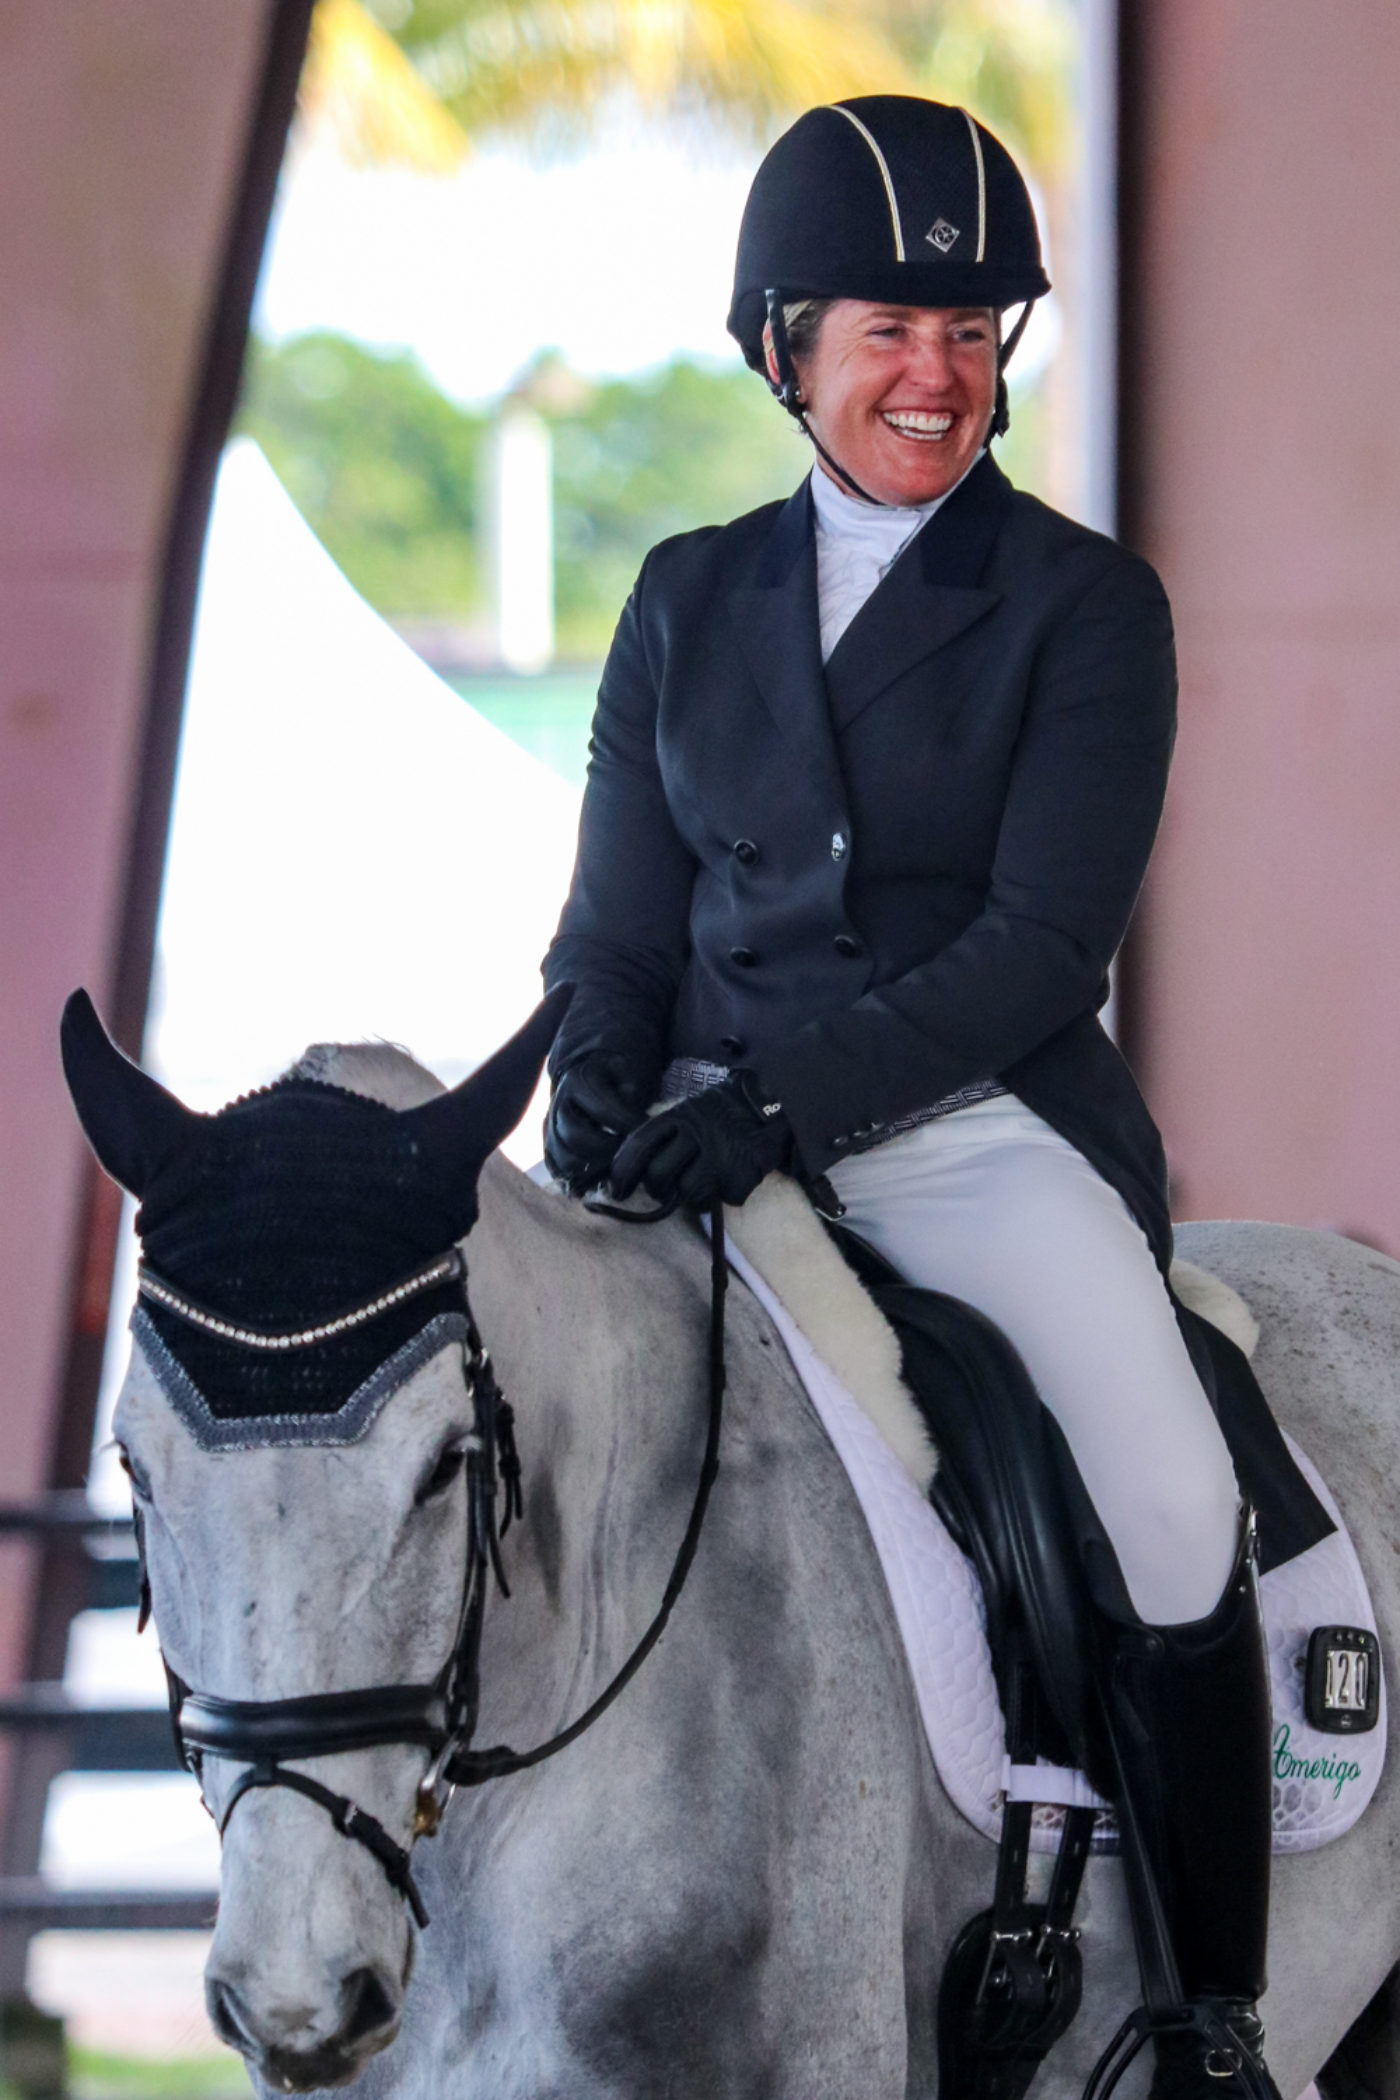 Sharon White was all smiles after Cooley On Show's test. Samantha Clark Photo.